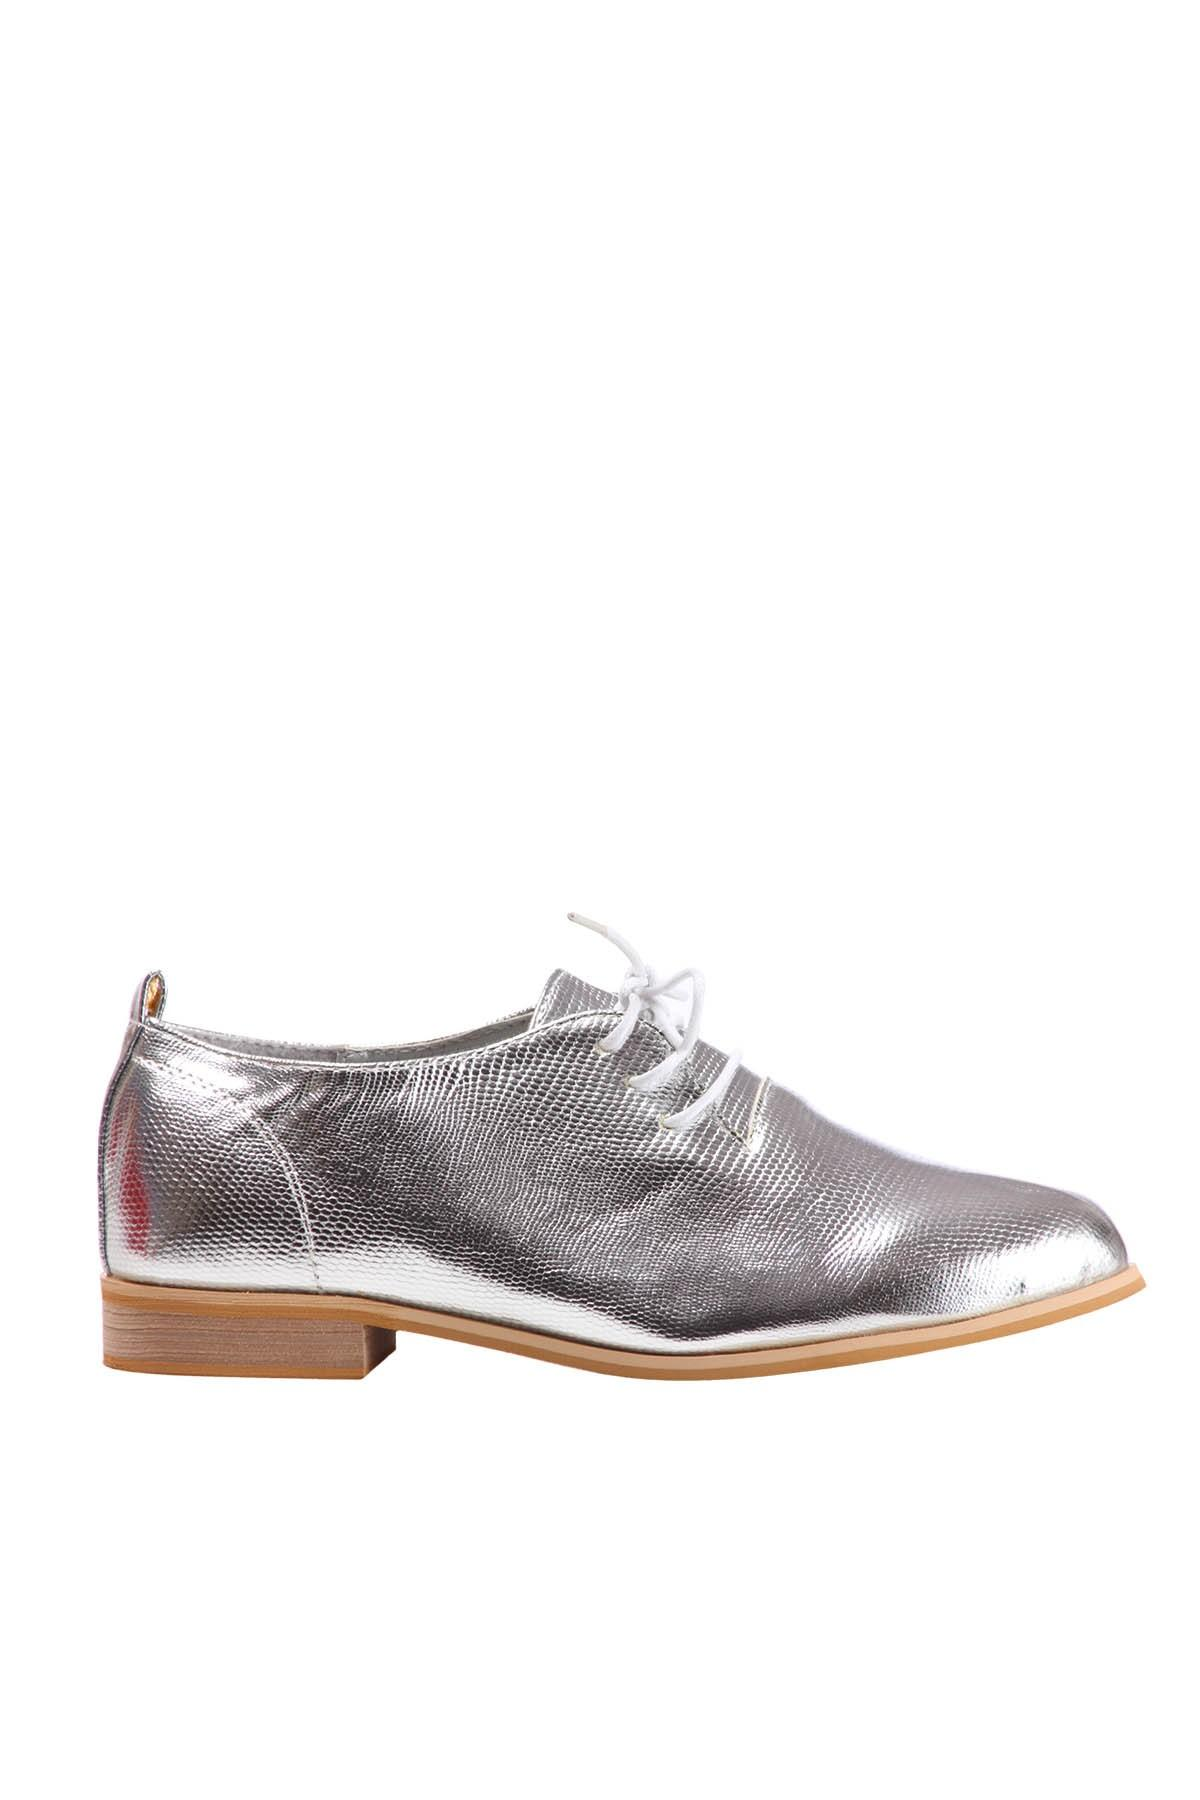 c7f815acfa01 Silver Chic Shoes - SeenIt